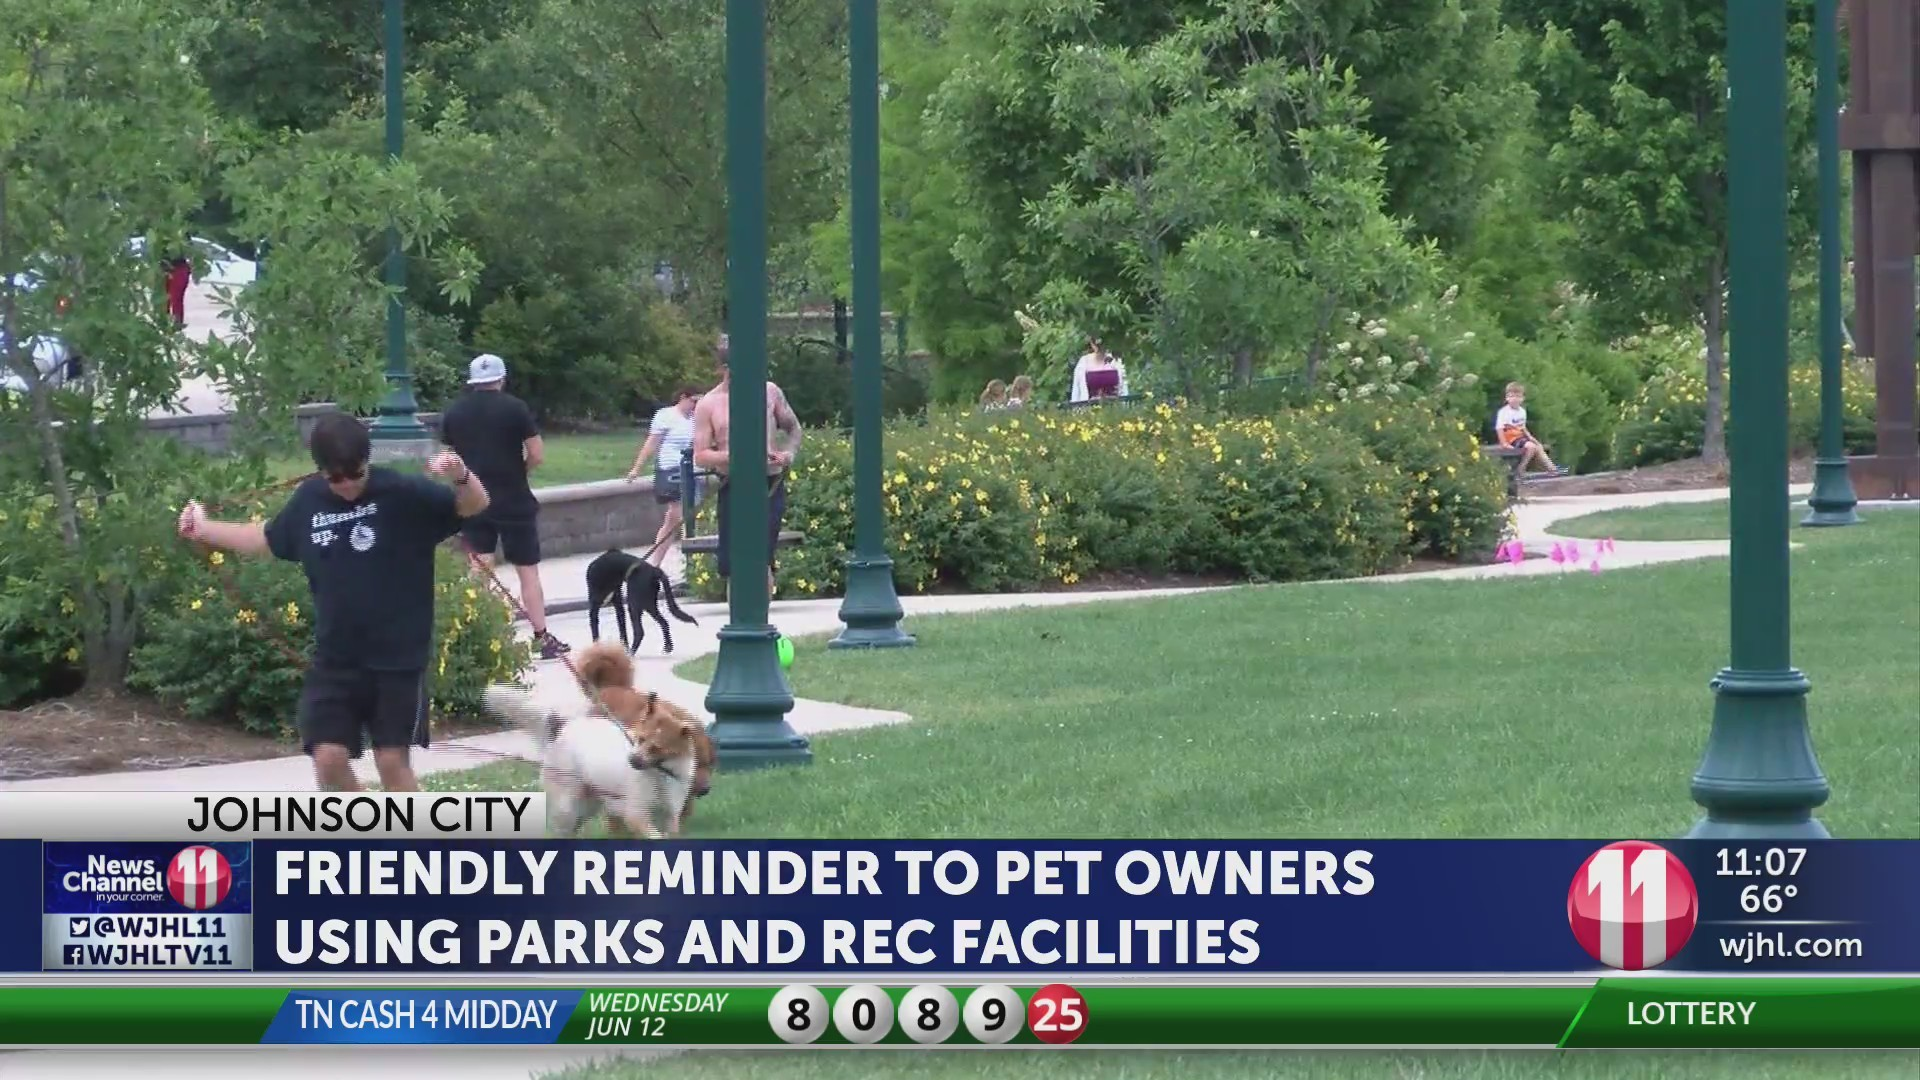 JC Parks and Rec Dept. reminds owners to clean up after dogs